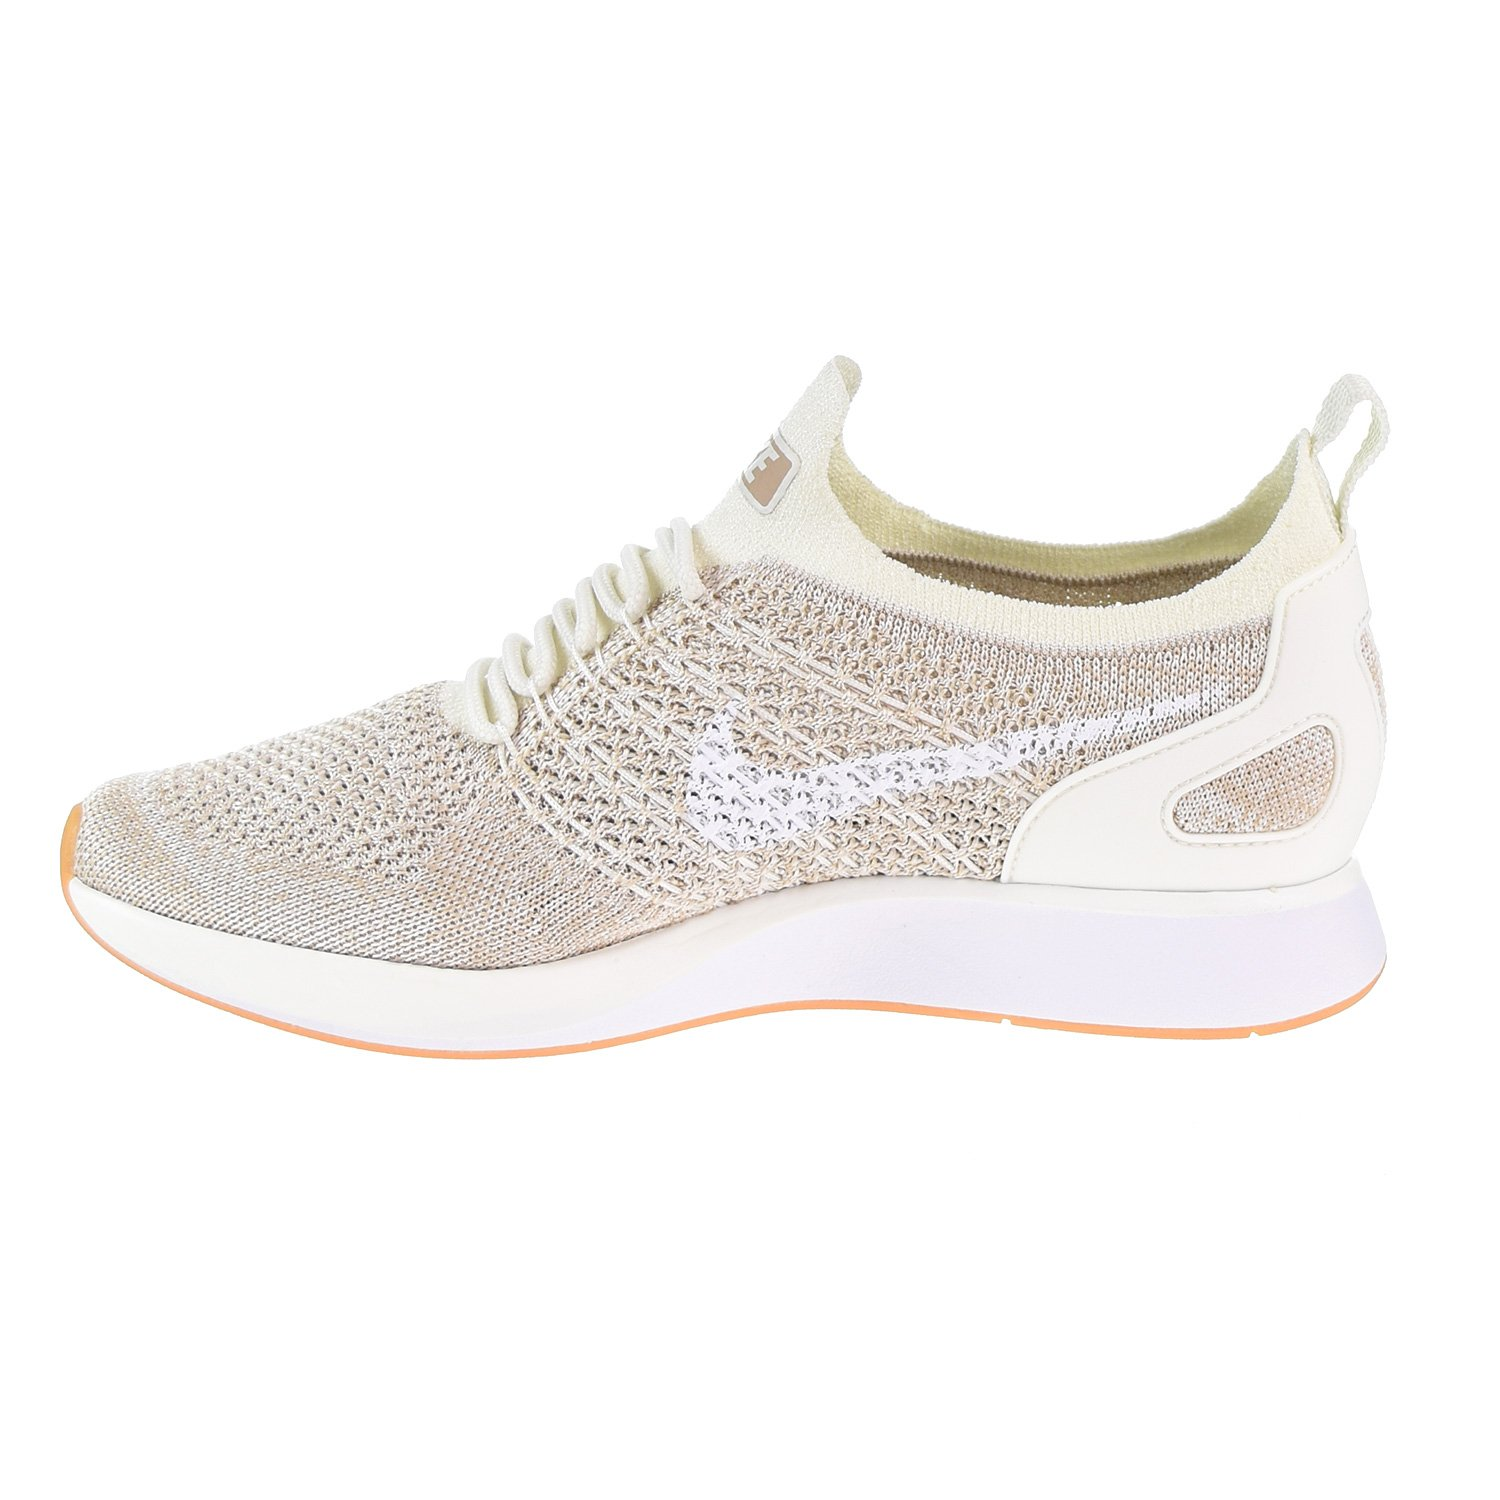 NIKE Womens Air Zoom Trainers Mariah Flyknit Racer Running Trainers Zoom Aa0521 Sneakers Shoes B079Z5189M 8 B(M) US|Sail/White/Gum 6f39ac